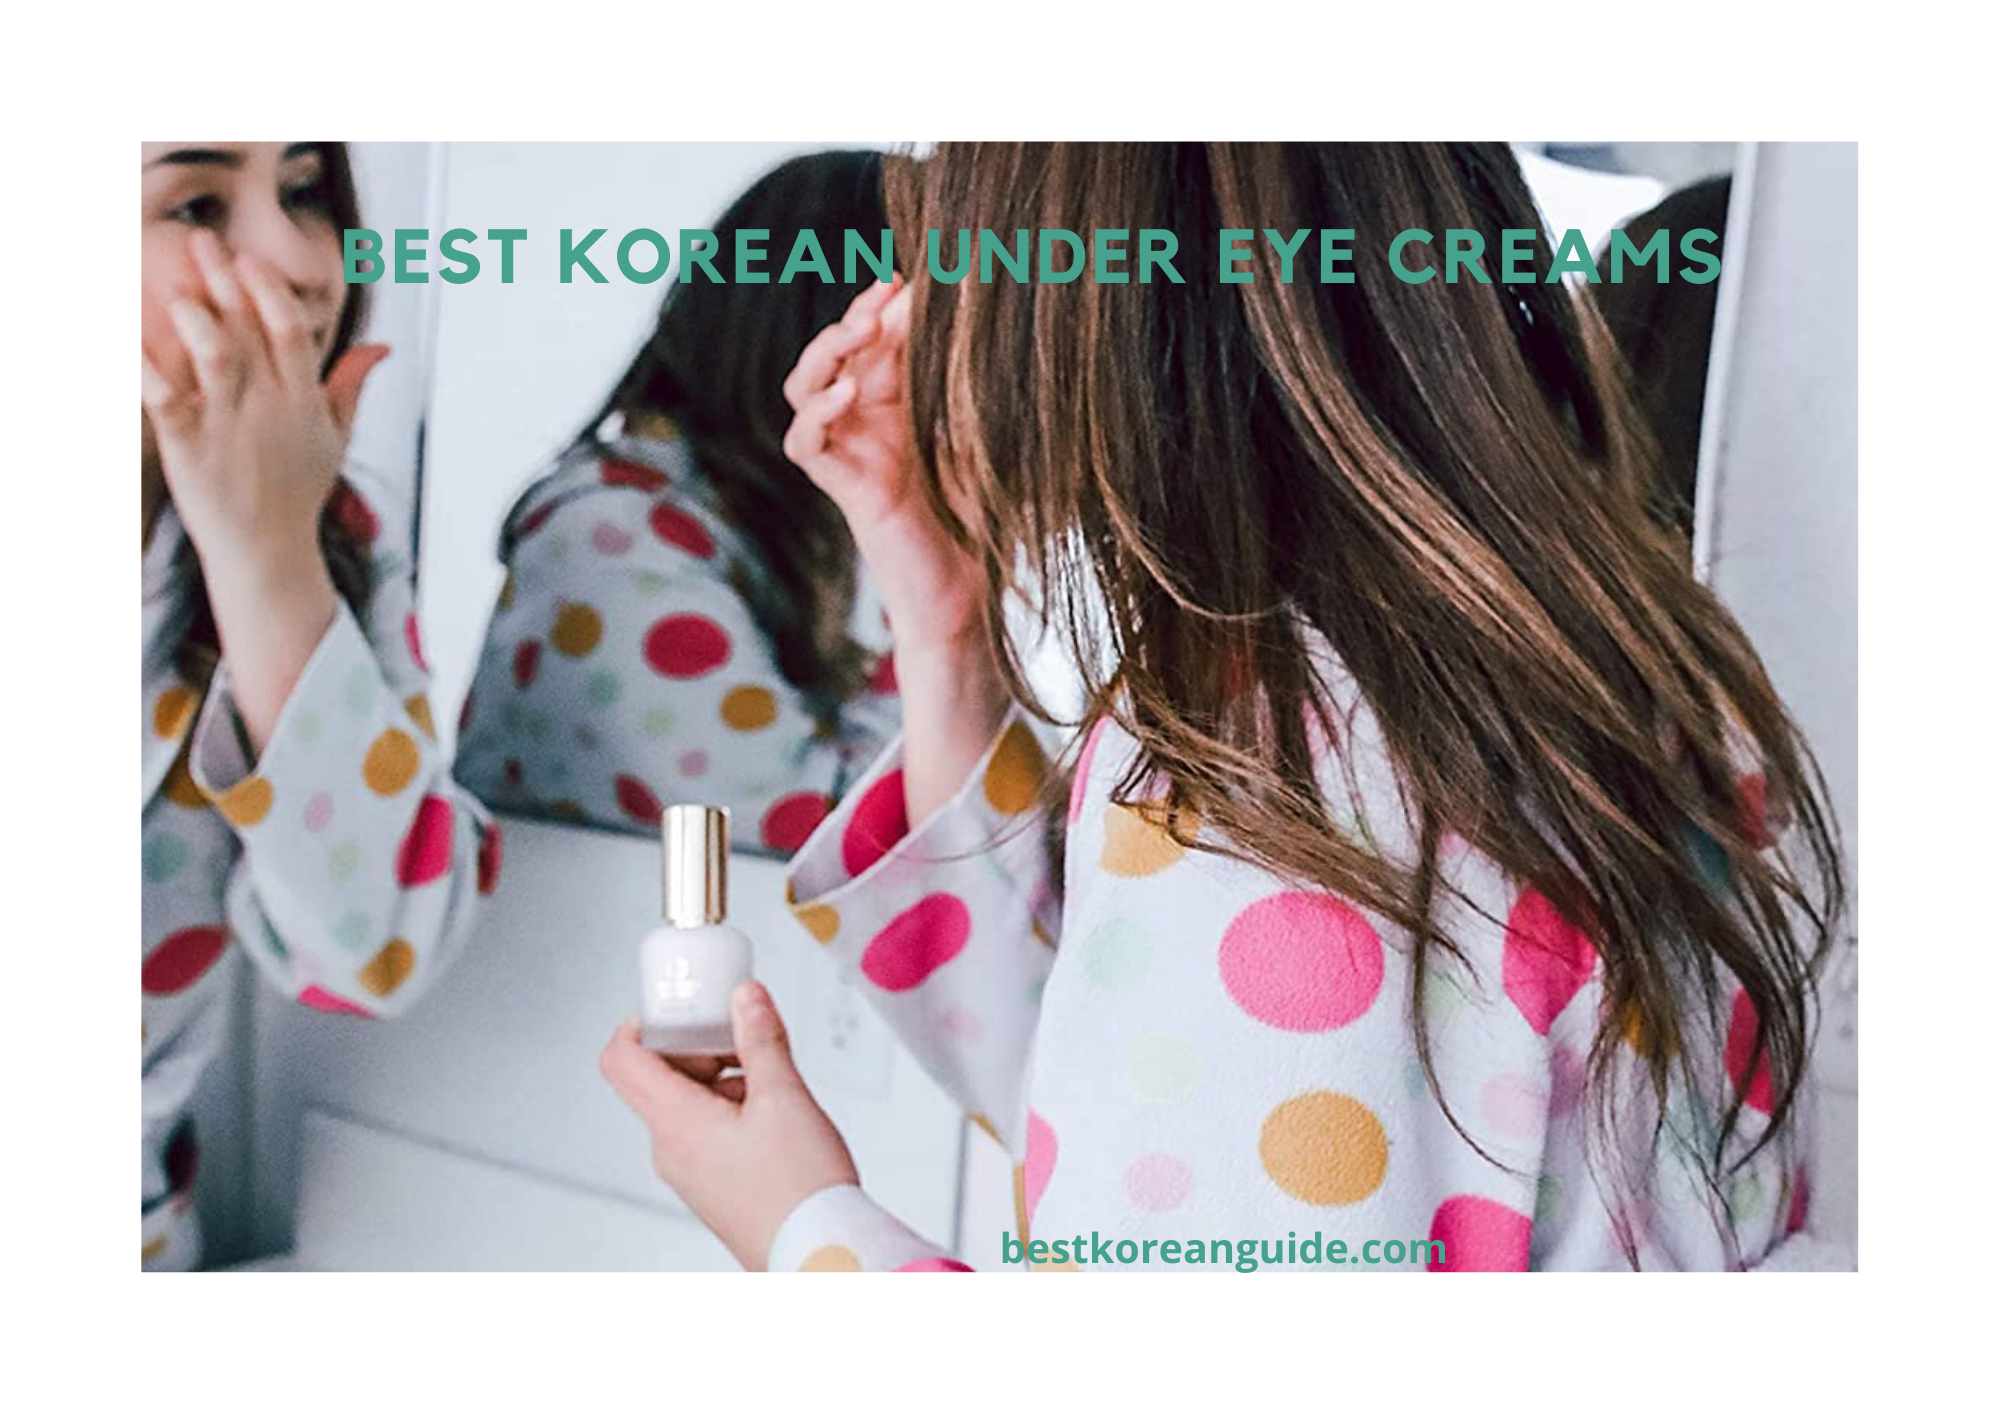 Best Korean Under Eye Creams